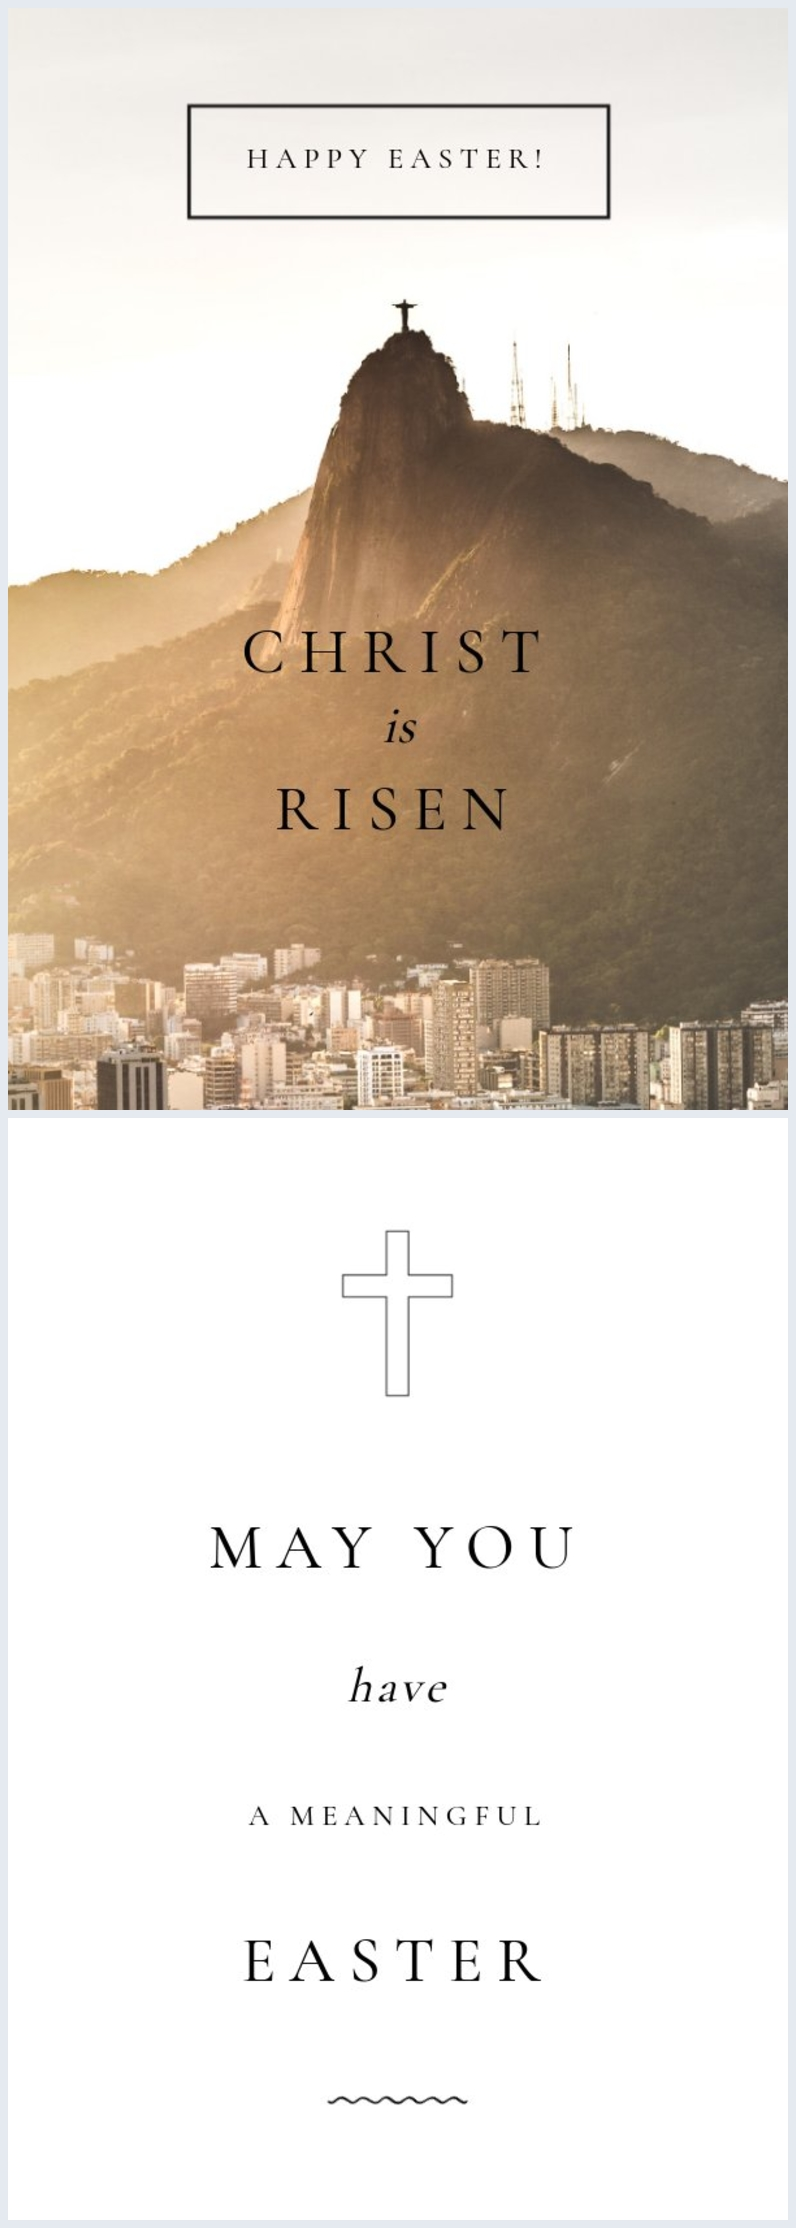 Religious Easter Greeting Card Design